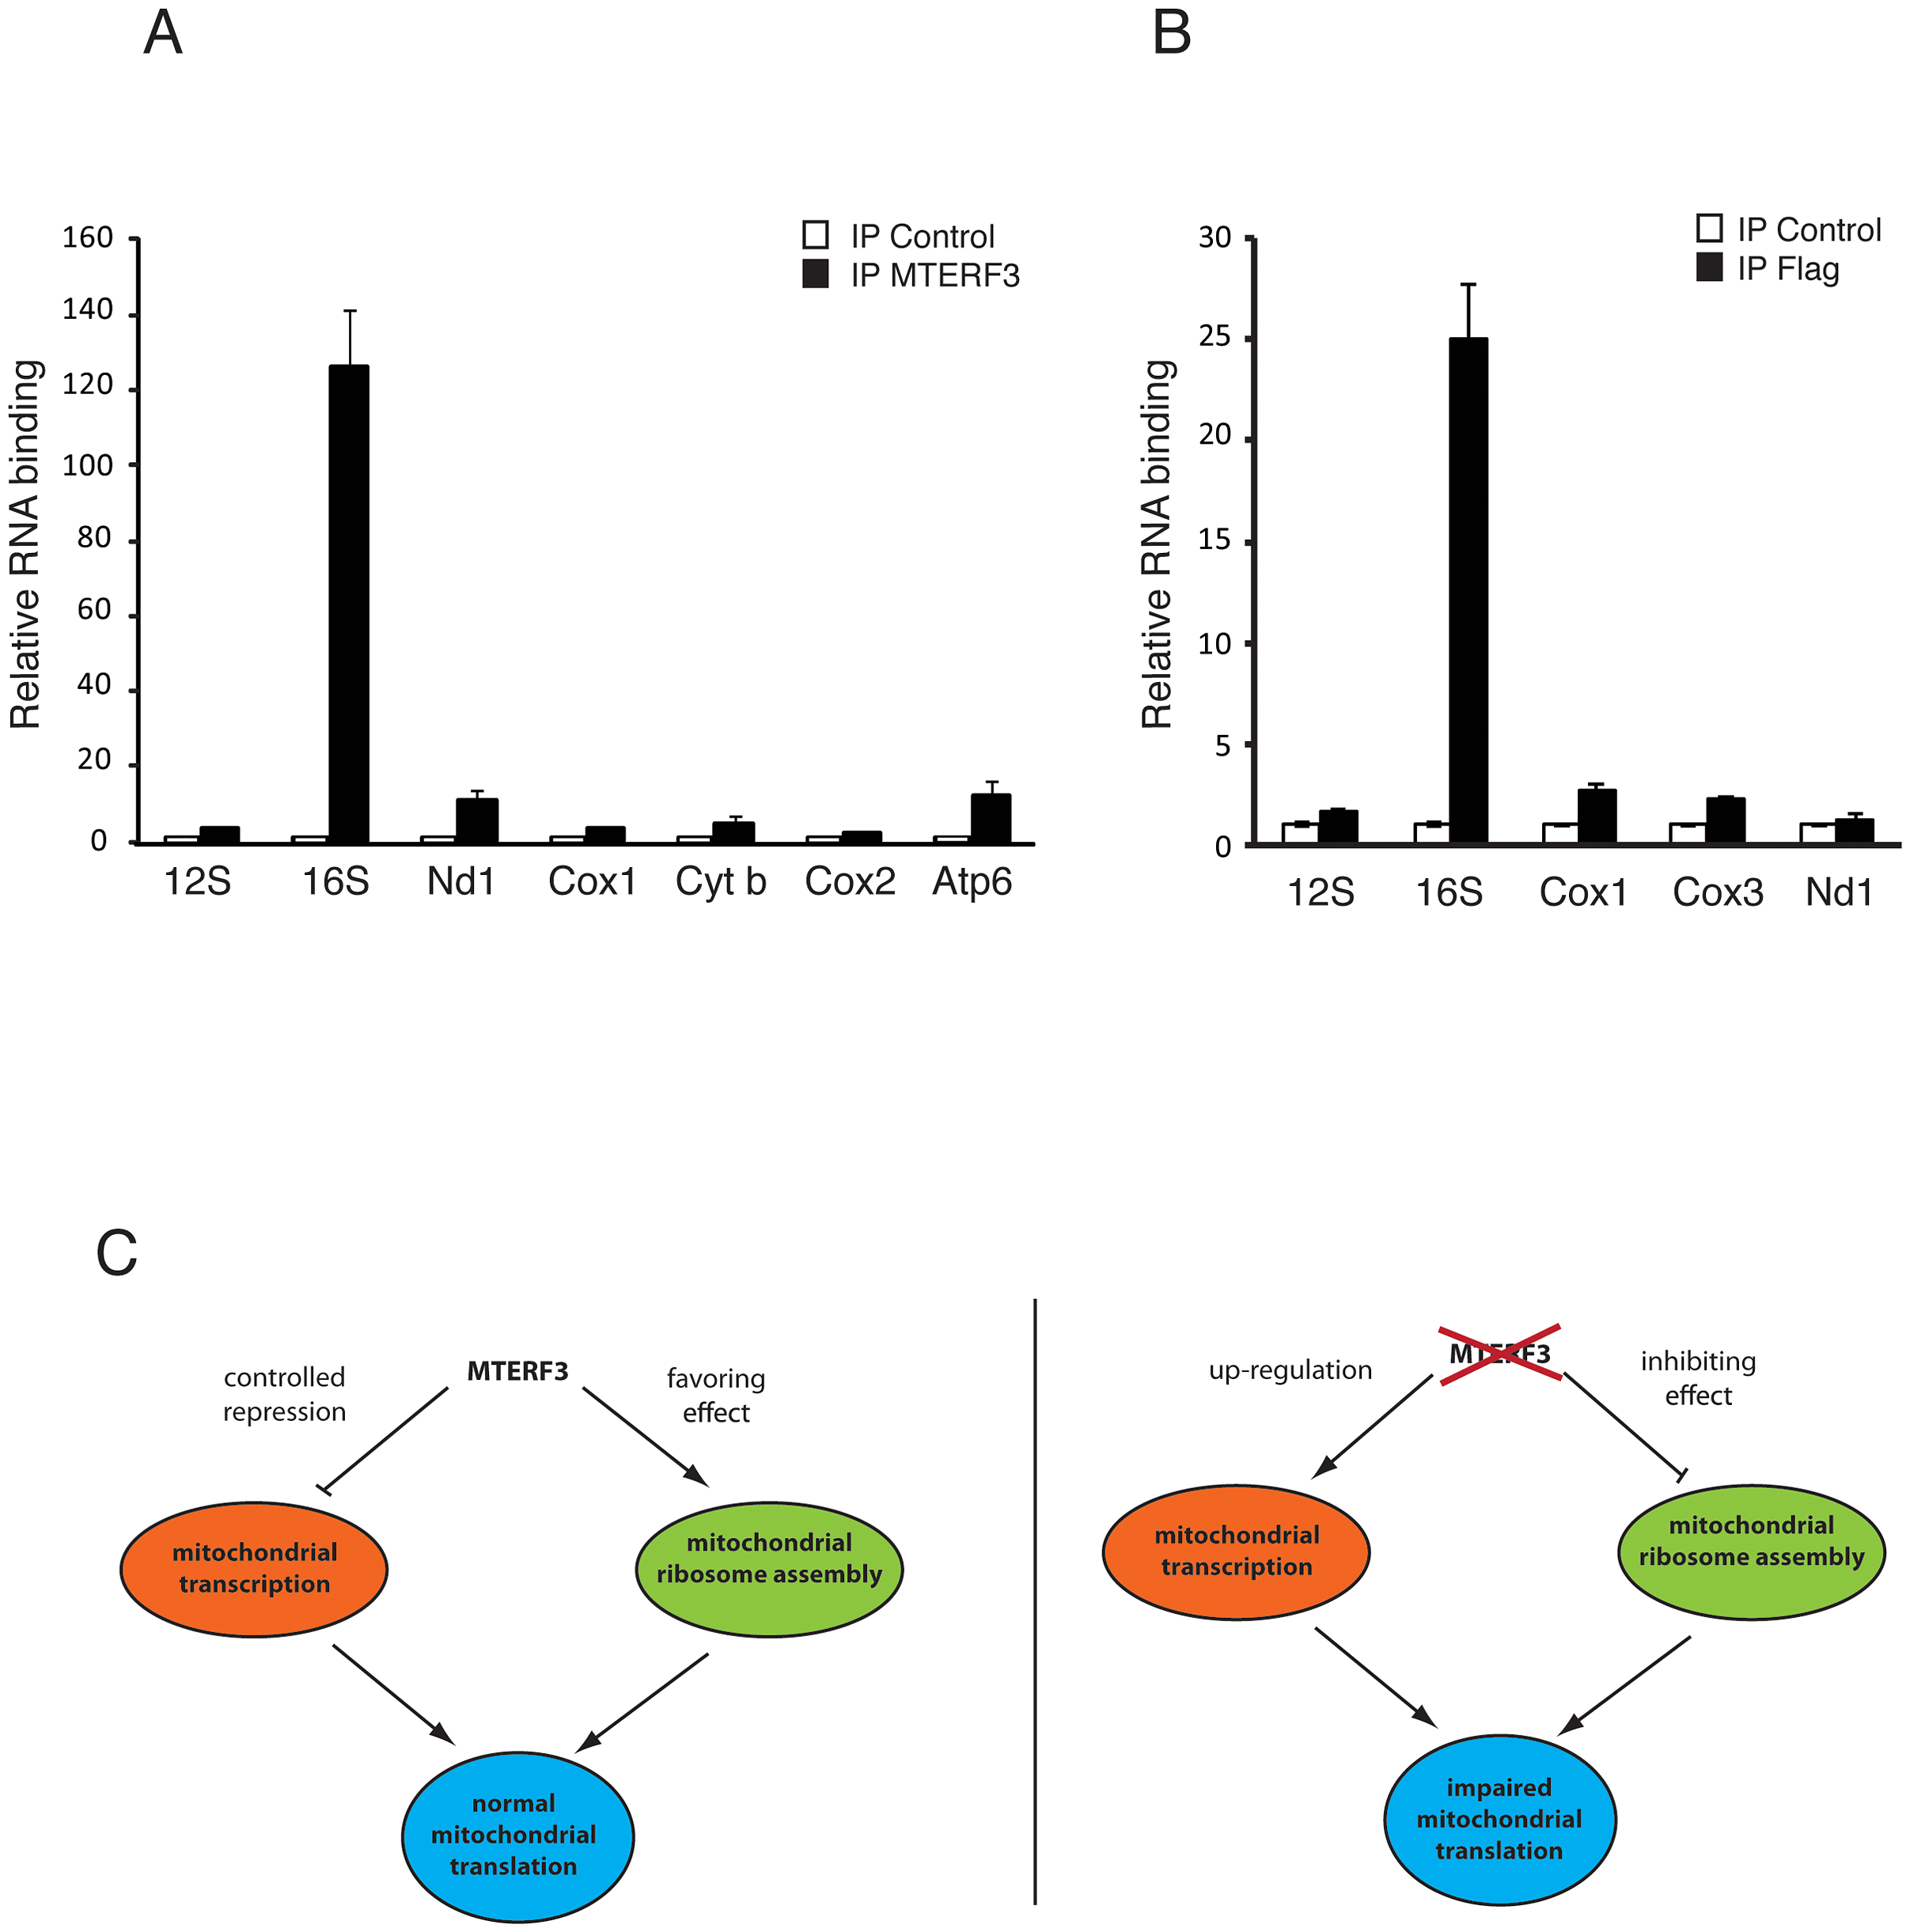 Binding of MTERF3 to mitochondrial 16S rRNA and model of MTERF3 action.